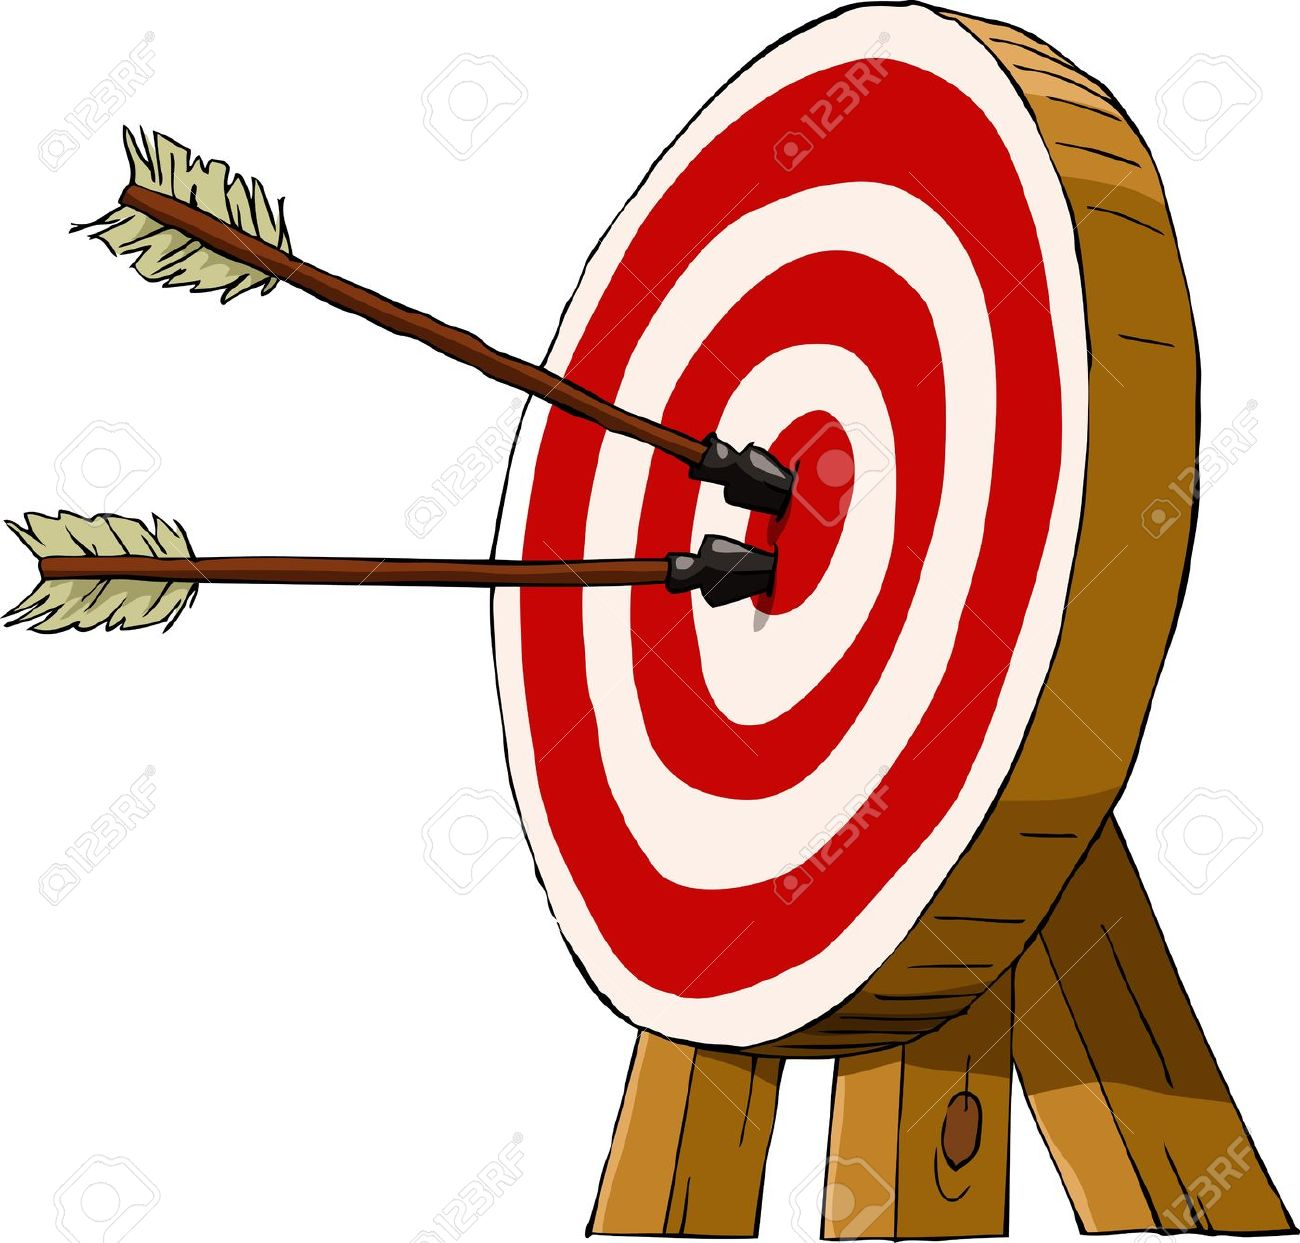 Bow and arrow target clipart. Clipartfest archery on a